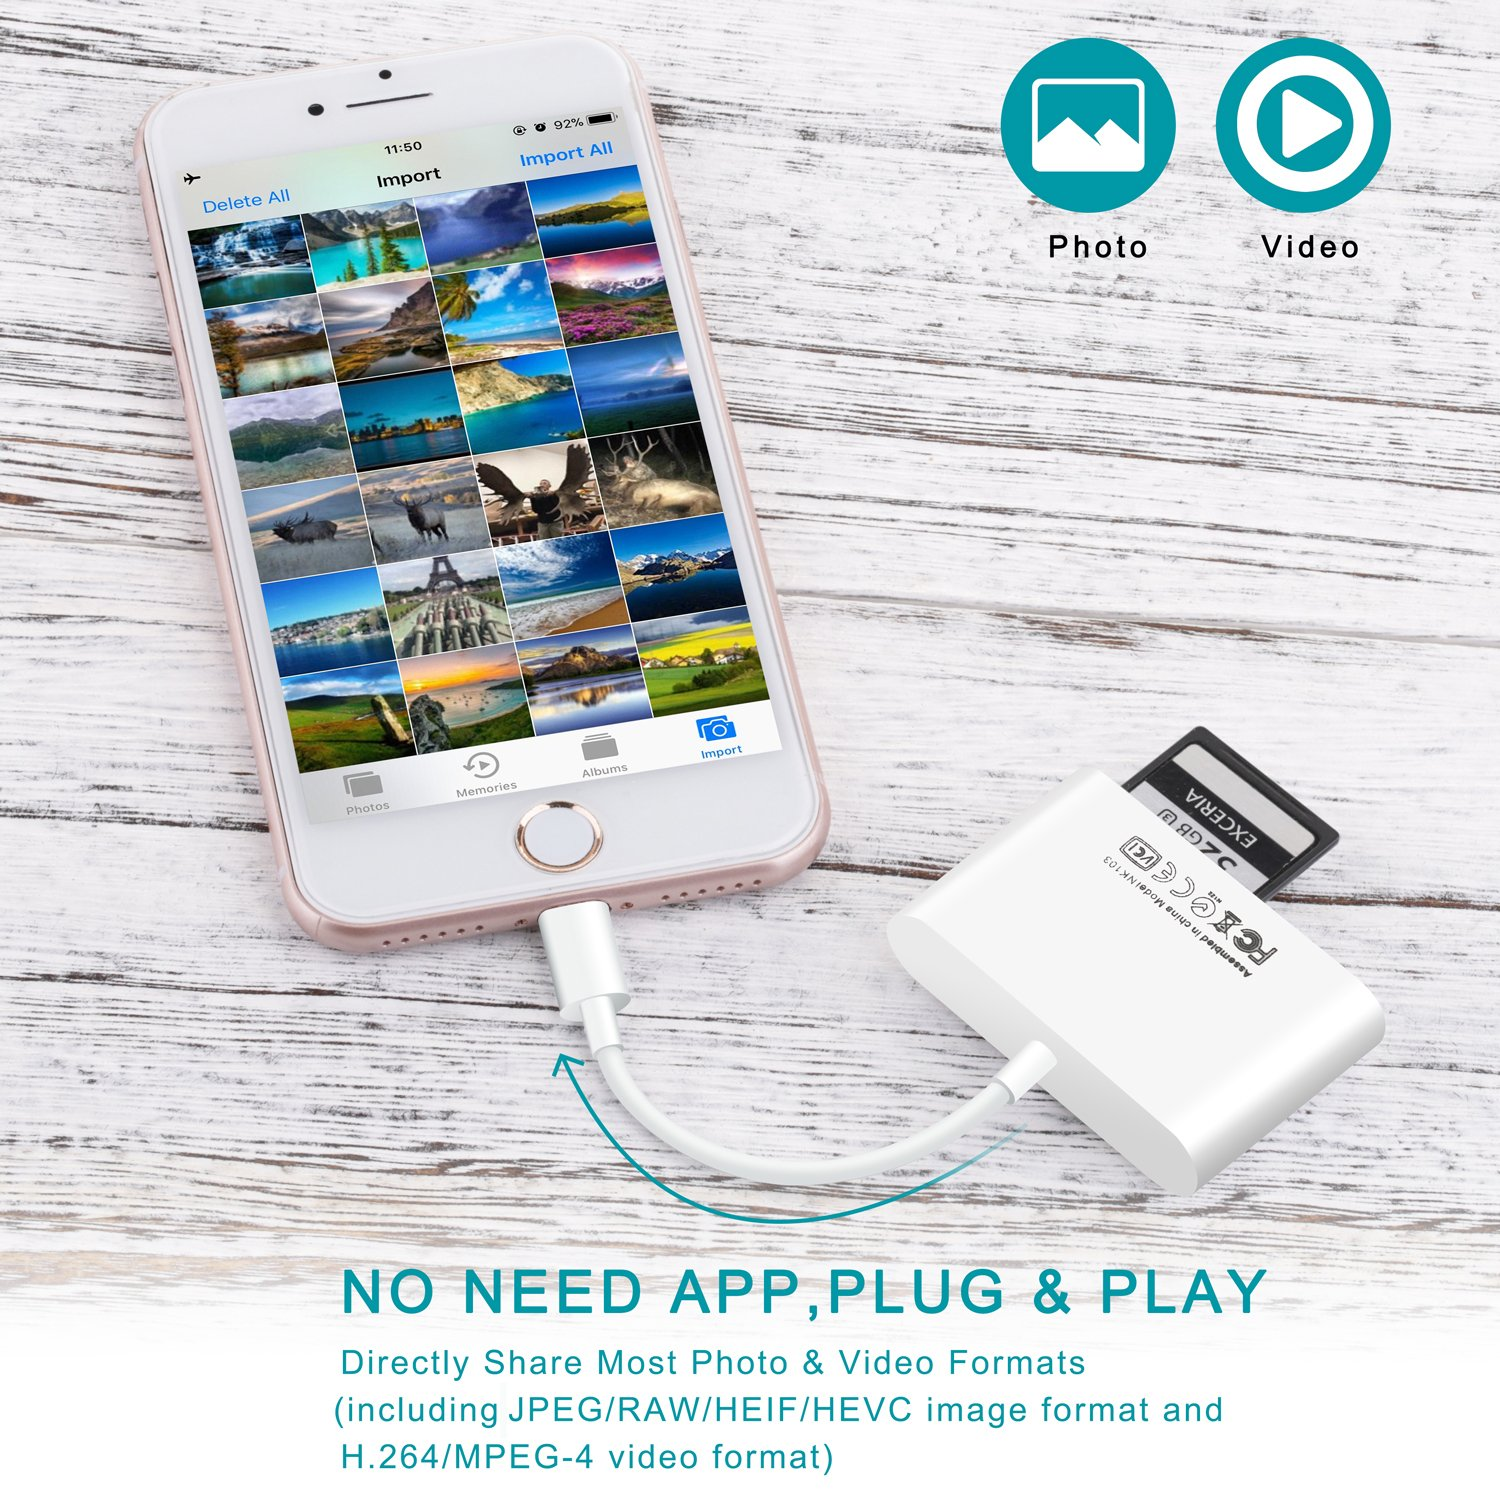 FA-STAR SD Card Reader, Digital Camera Reader Adapter Cable, Lightning to USB Camera Adapter, SD/TF Card Reader, Trail Game Camera Viewer for iPhone/iPad, No App Required, Plug and Play by FA-STAR (Image #5)